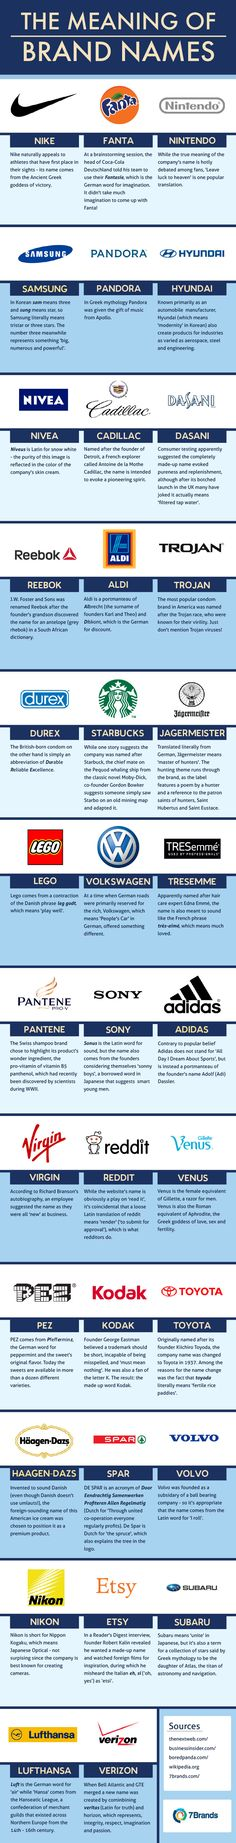 The meaning of brand names